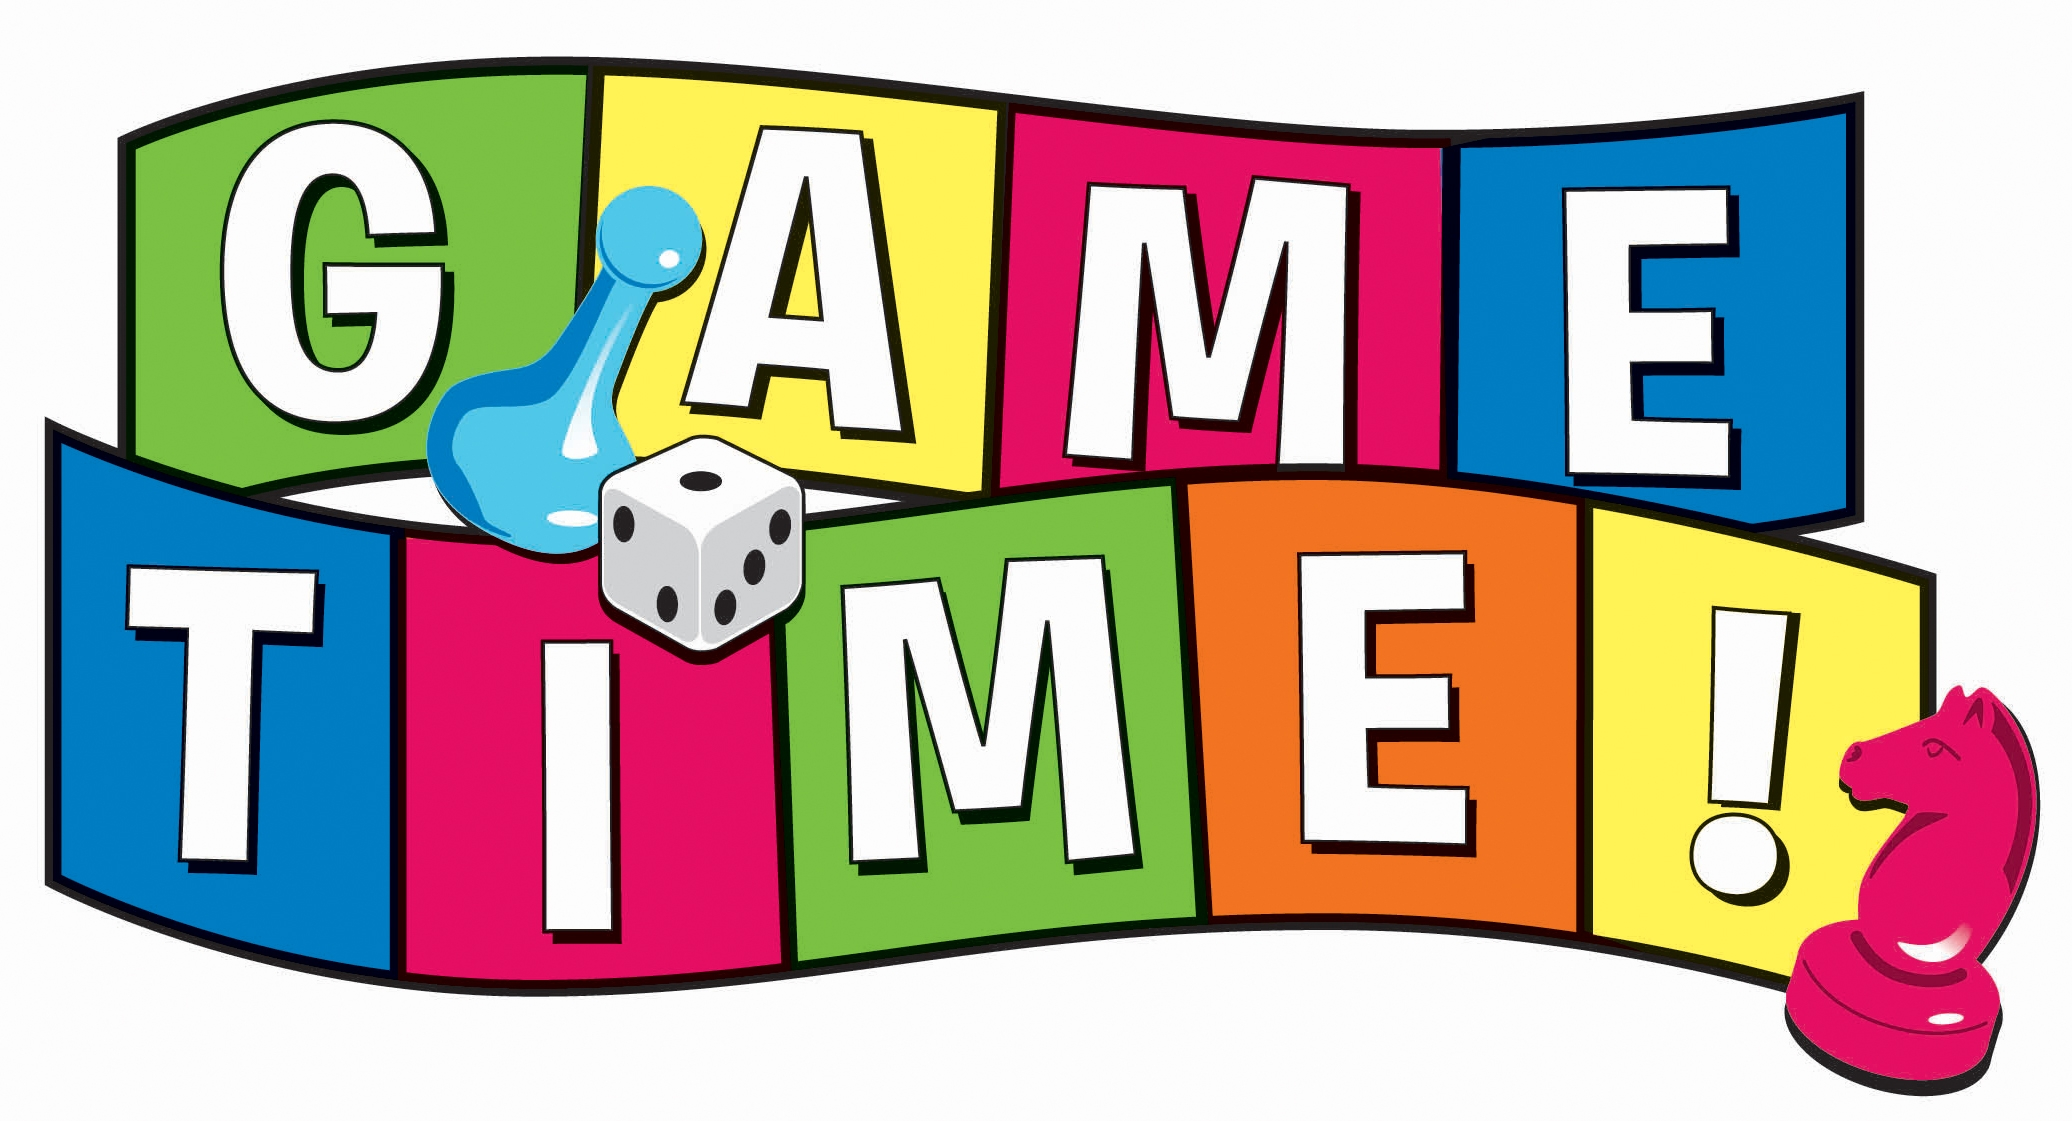 Board game clipart New Games Clipart Free Download Clip Art Free.